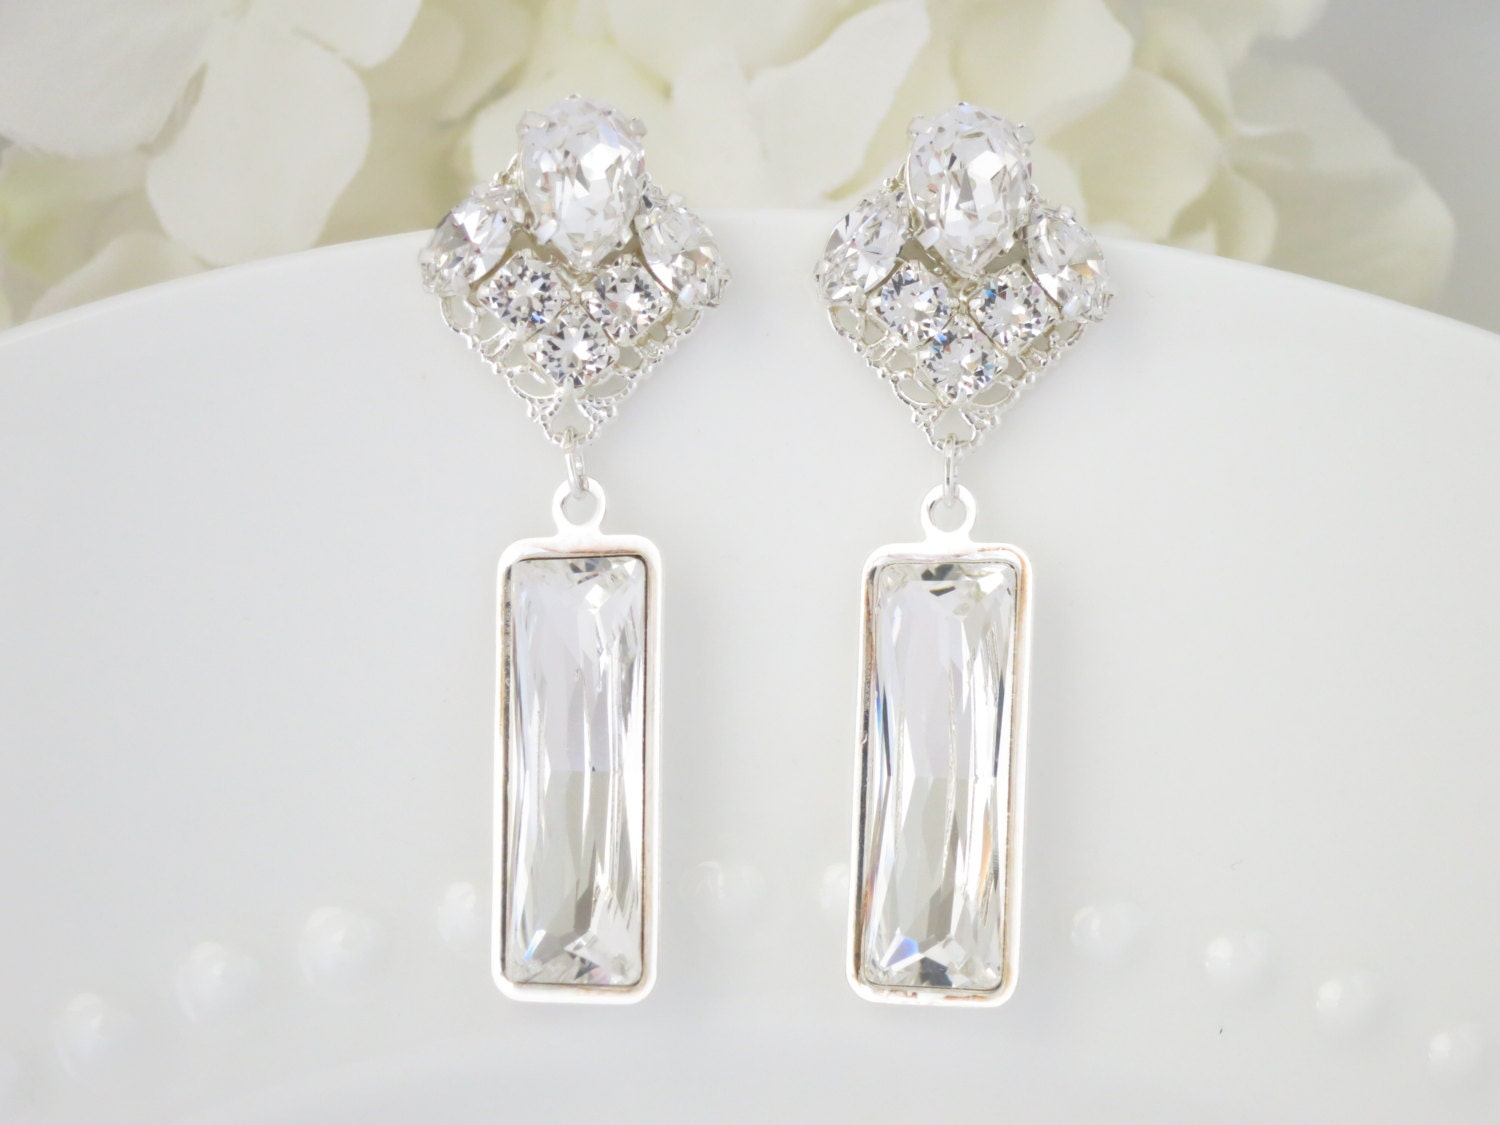 Swarovski crystal post earring, Rhinestone chandelier wedding earring, Statement bridal earring